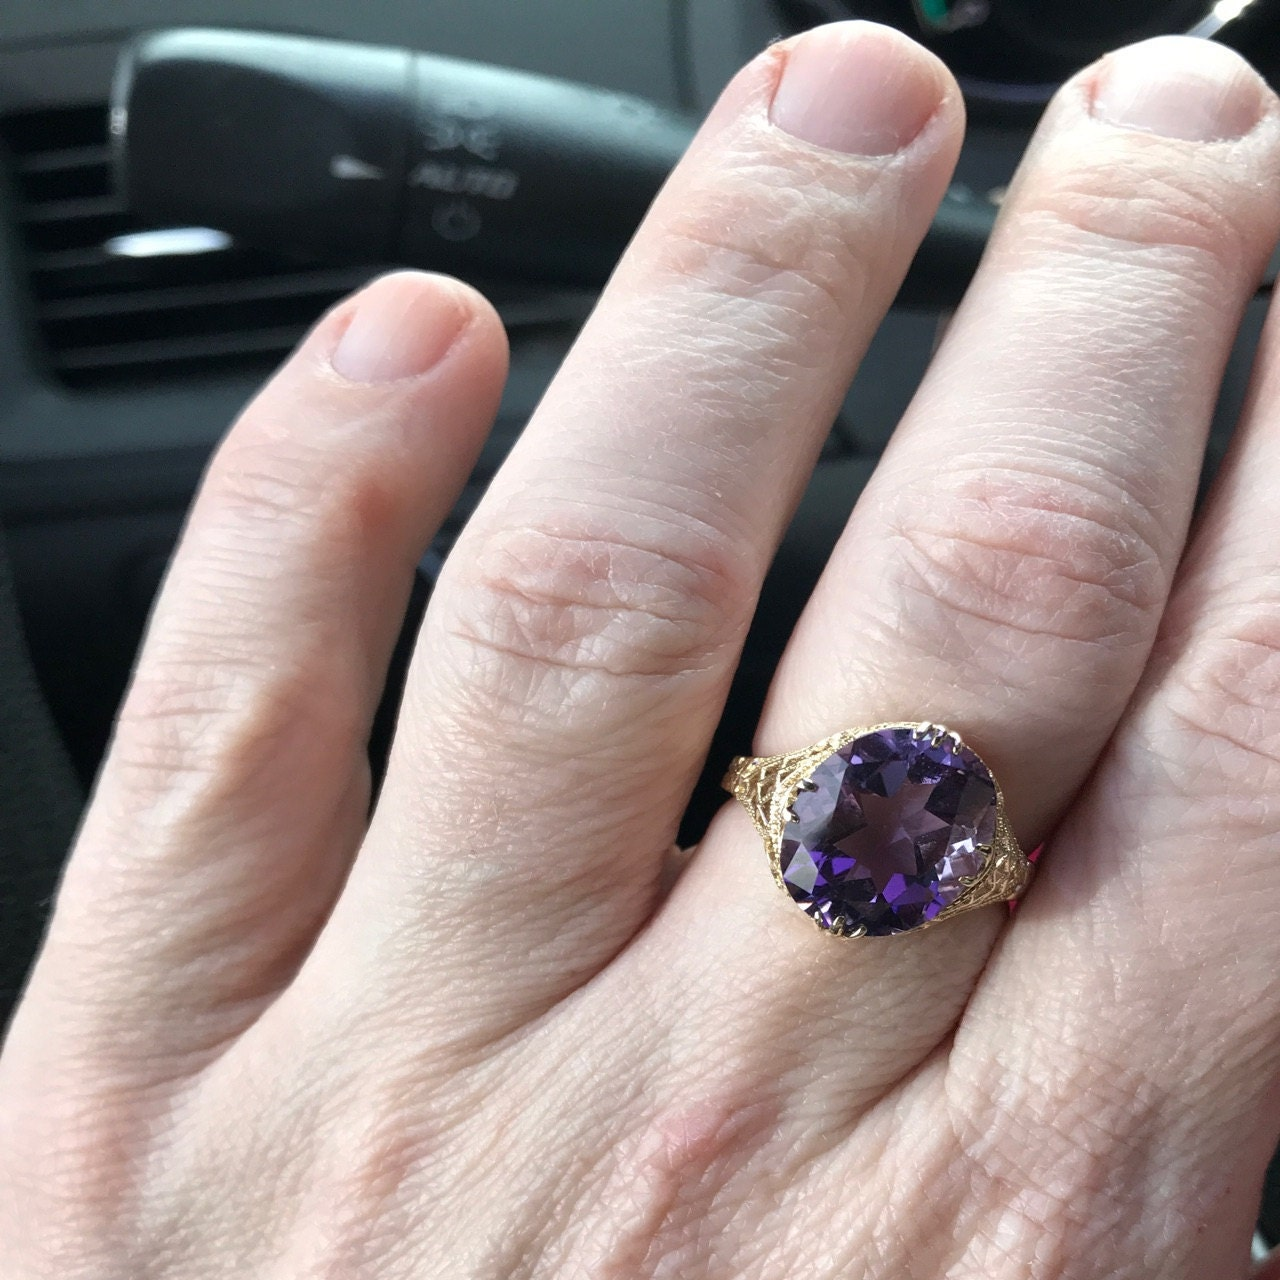 Jennifer Johnson added a photo of their purchase